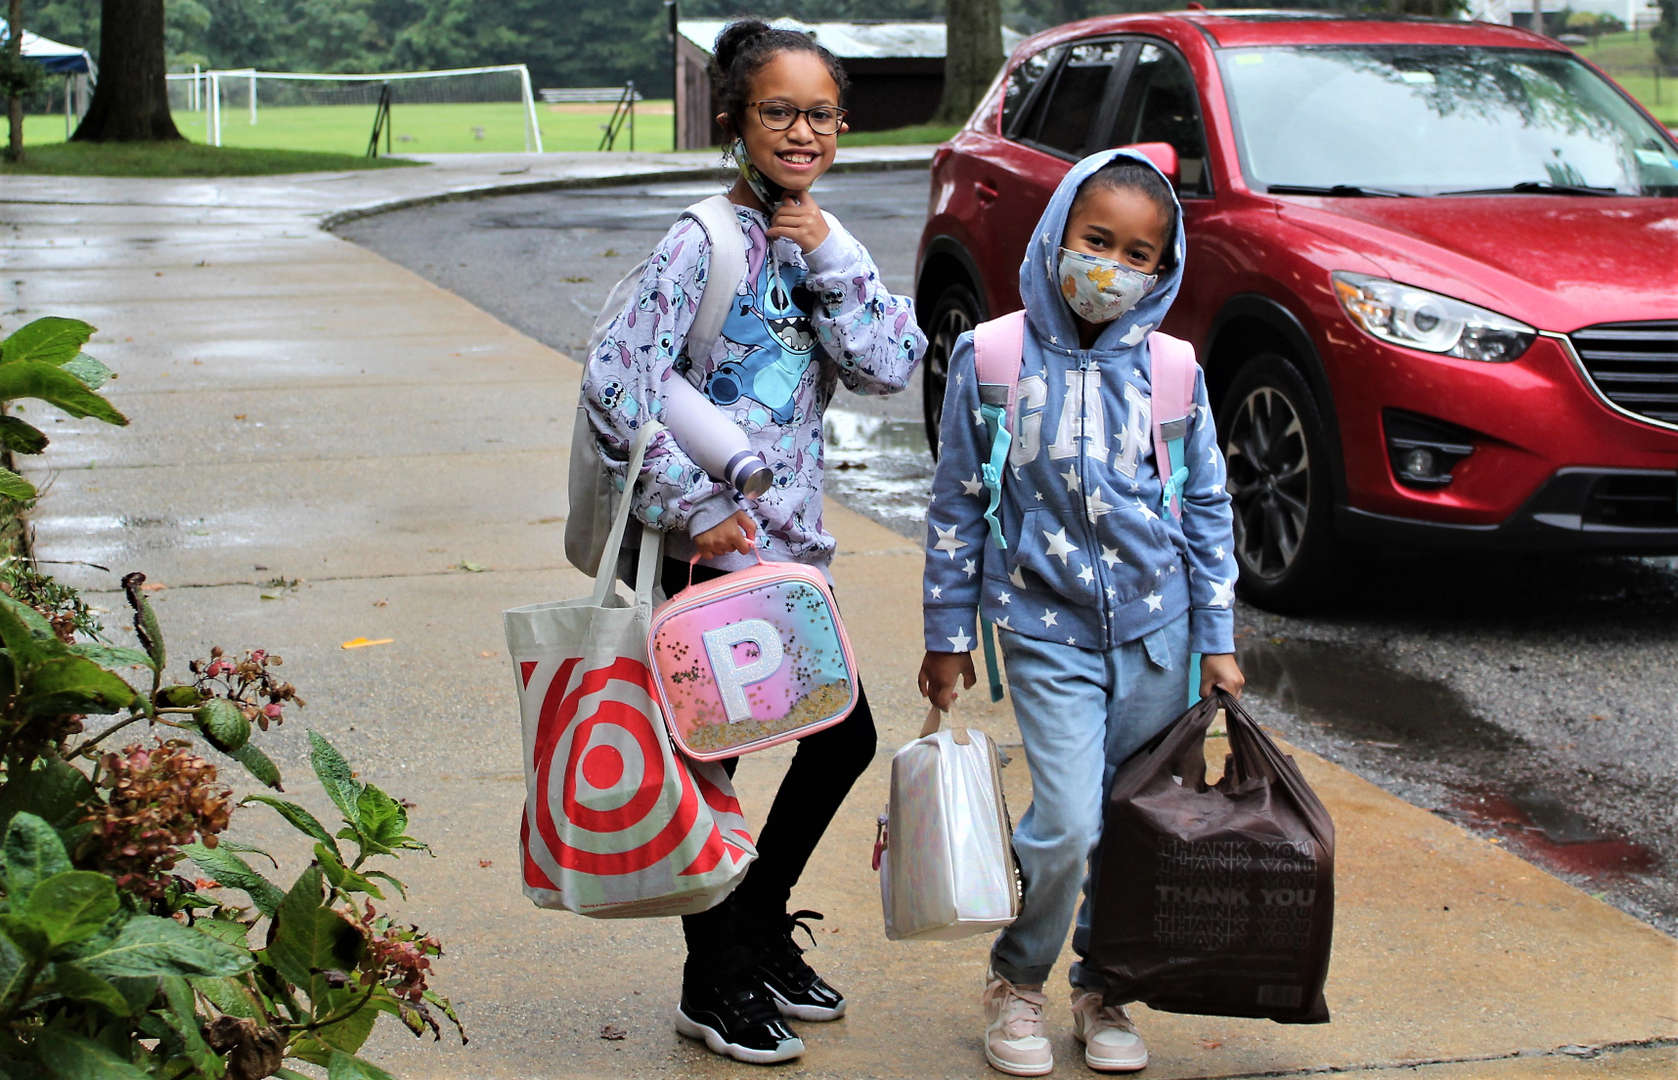 Two girls arrive at school.